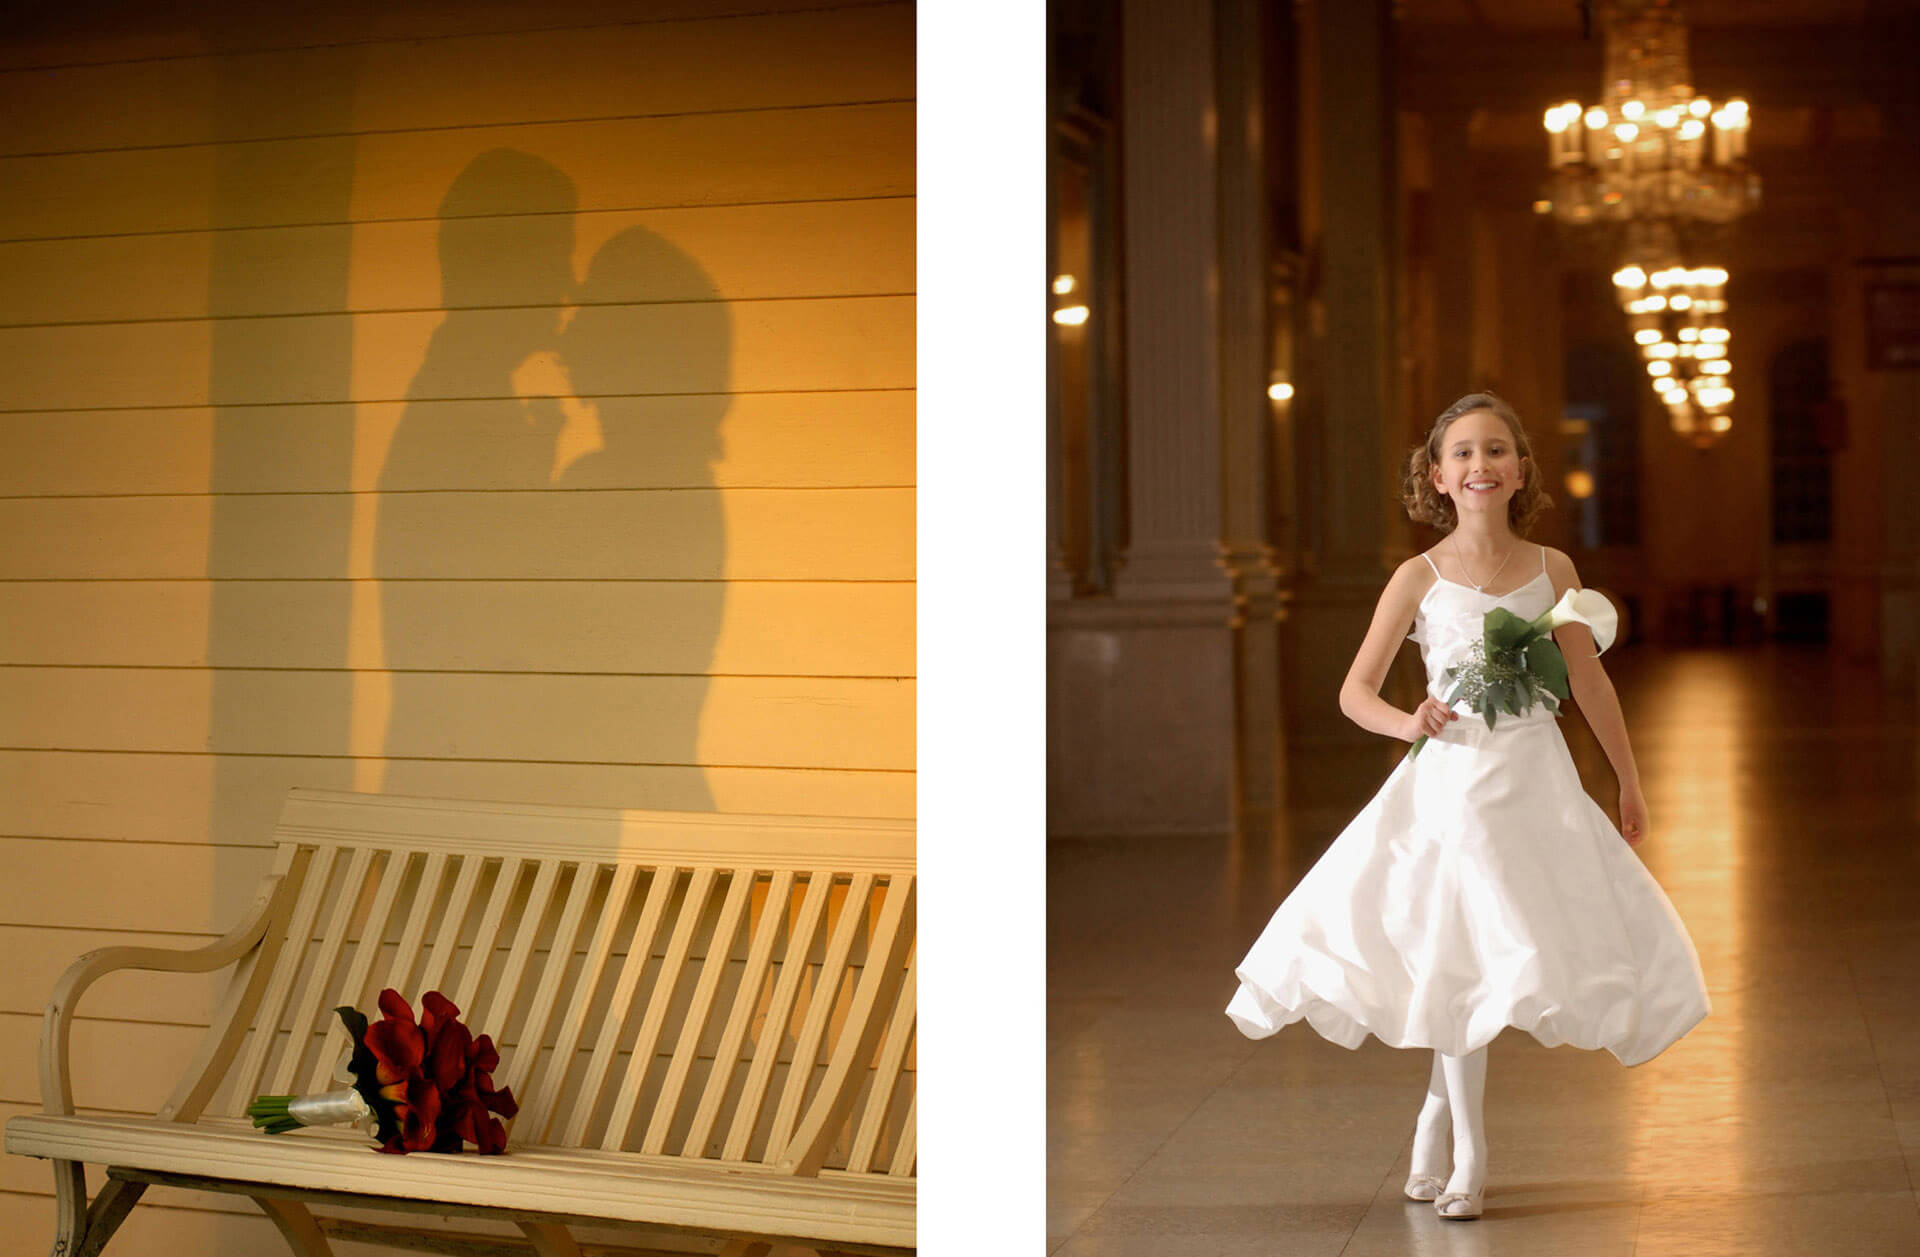 Classic Ann Arbor, Michigan wedding photography at it's best.